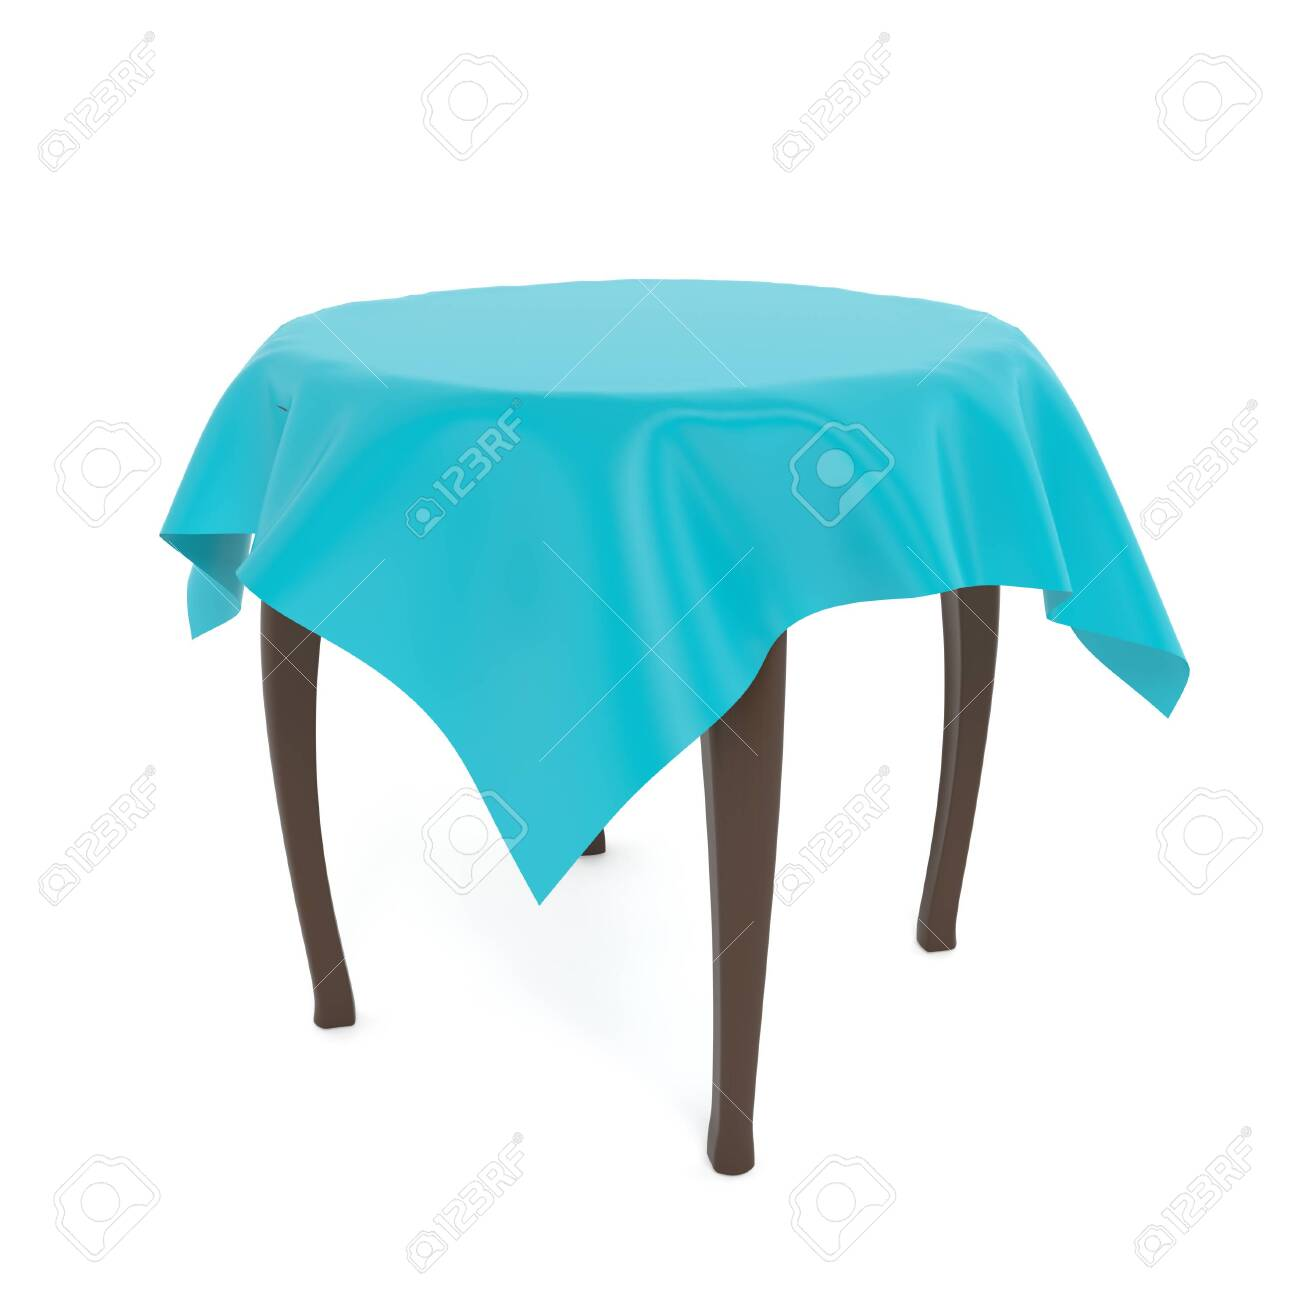 Wooden brown round table with blue tablecloth. 3d rendering illustration isolated on white background. - 150521350